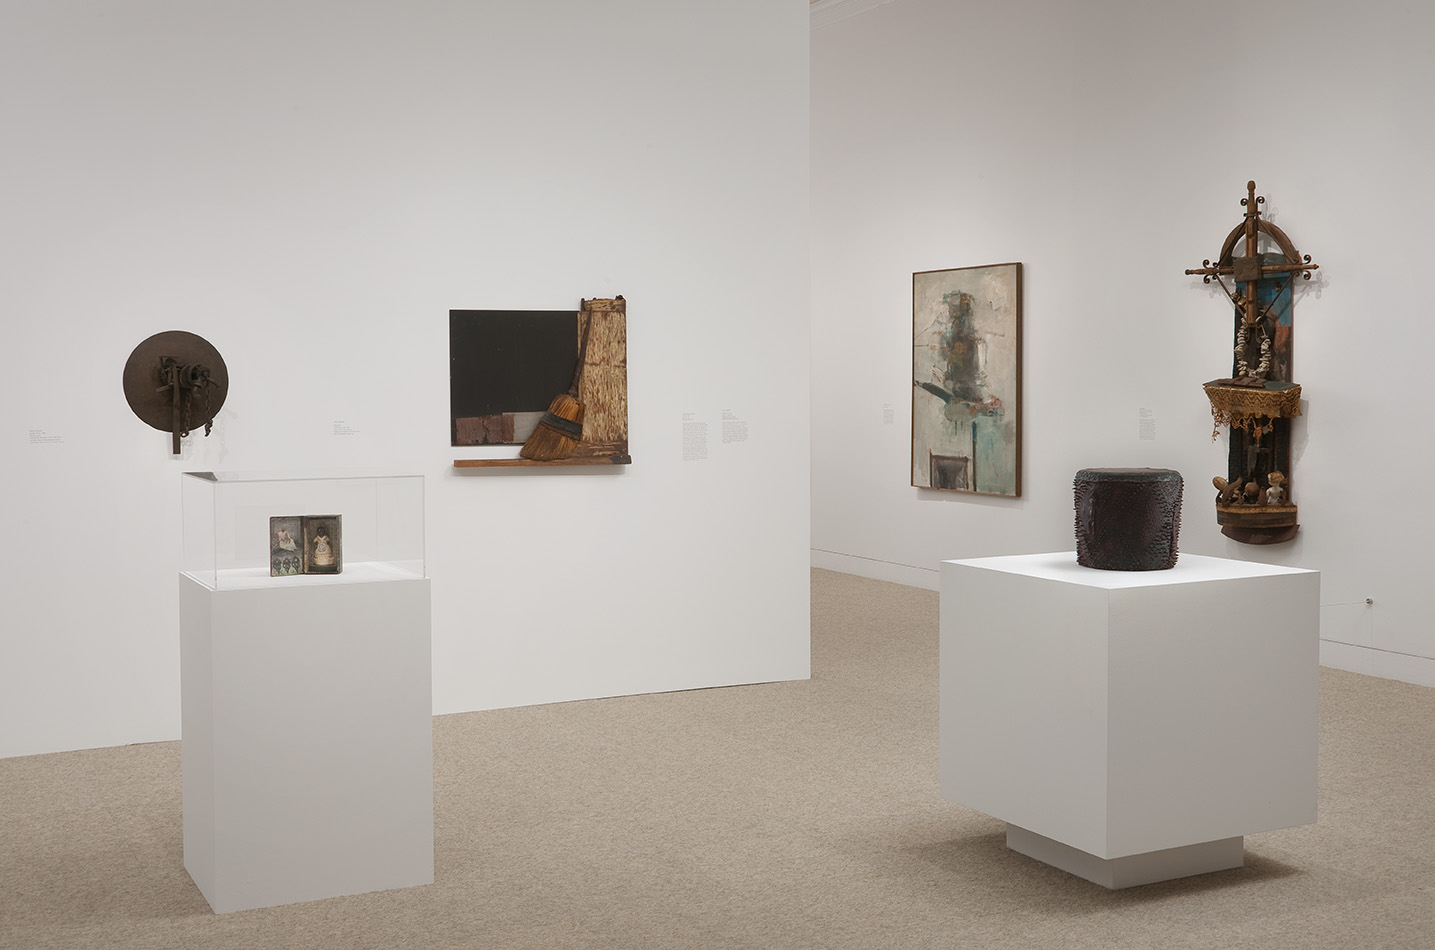 "Standing from left to right: Betye Saar, ""Imitation of Life,"" 1975 and Houston Conwill, ""Drum,"" c. 1975–80; left wall from left to right: Melvin Edwards, ""Double Chain,"" 1966 and Dale Brockman Davis, ""Swept,"" 1970; right wall from left to right: John Altoon, ""Portrait of a Spanish Poet,"" 1959 and Gordon Wagner, ""Between Heaven and Hell,"" 1960–65. Installation view at the Hammer Museum, Los Angeles"